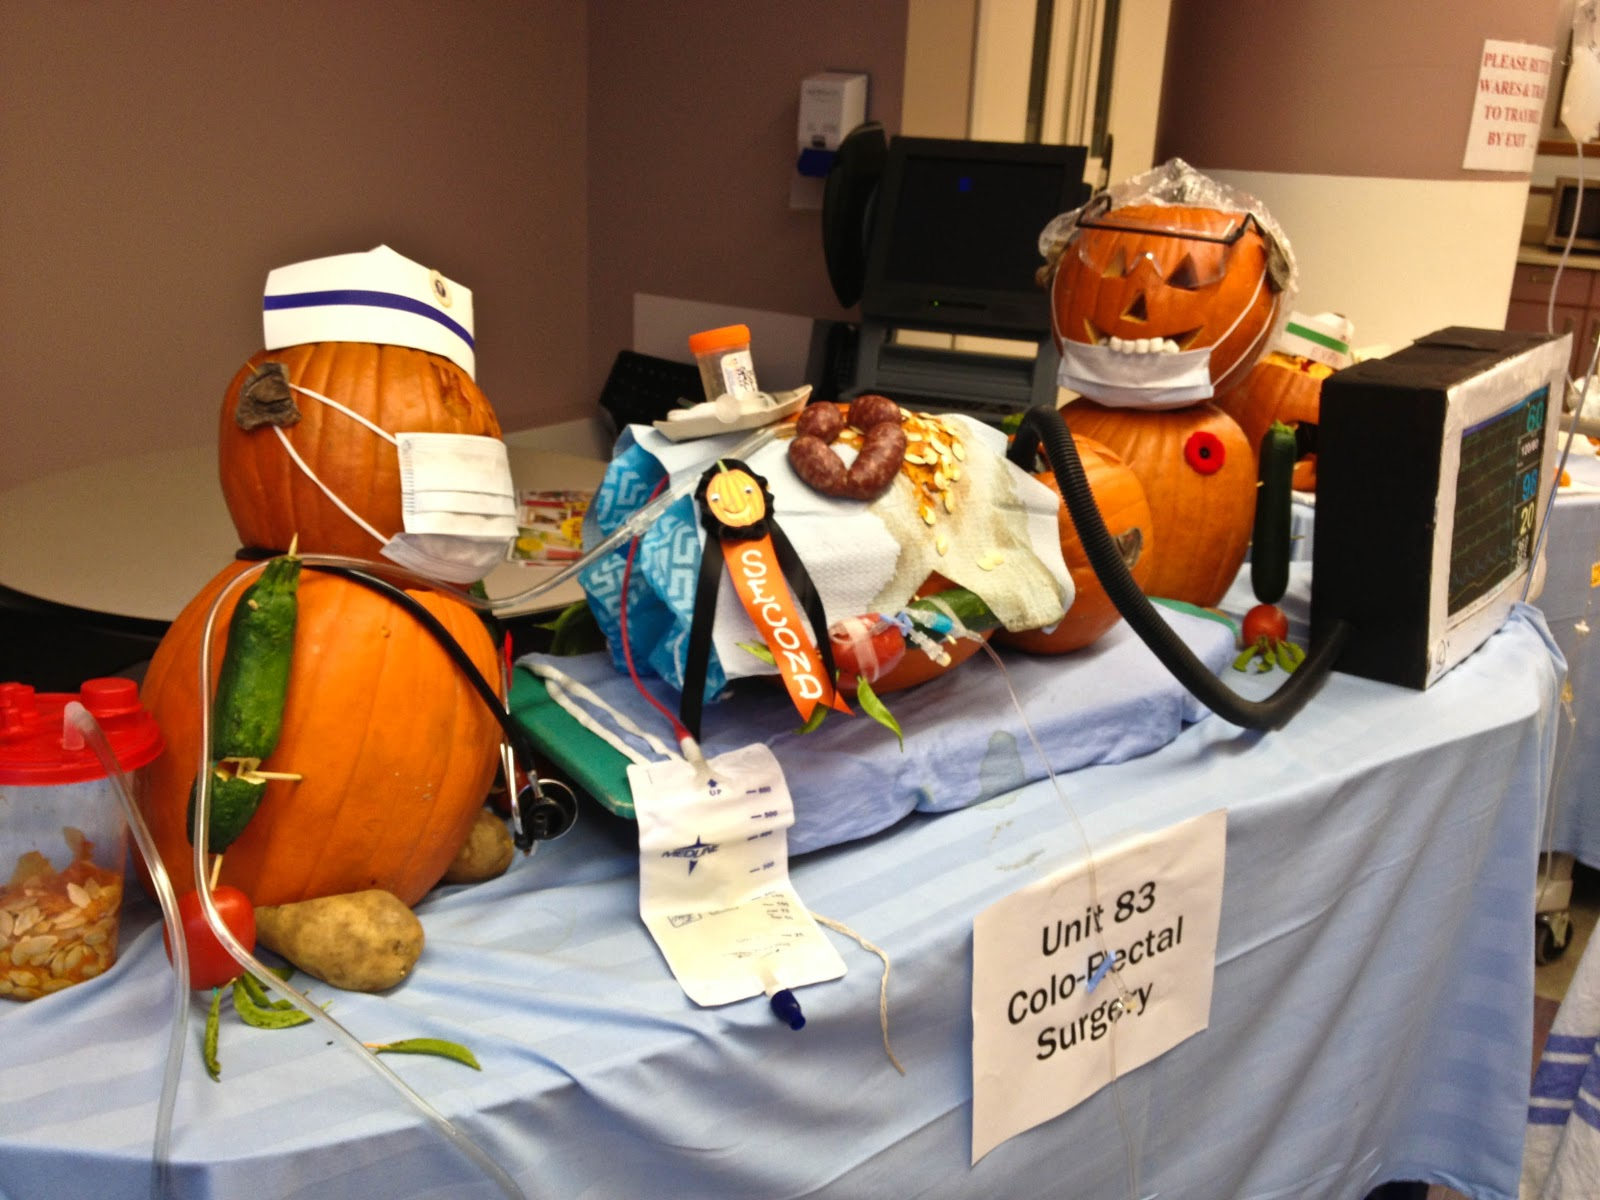 rockyview general hospital: pumpkin carving contest 2012 | clearly